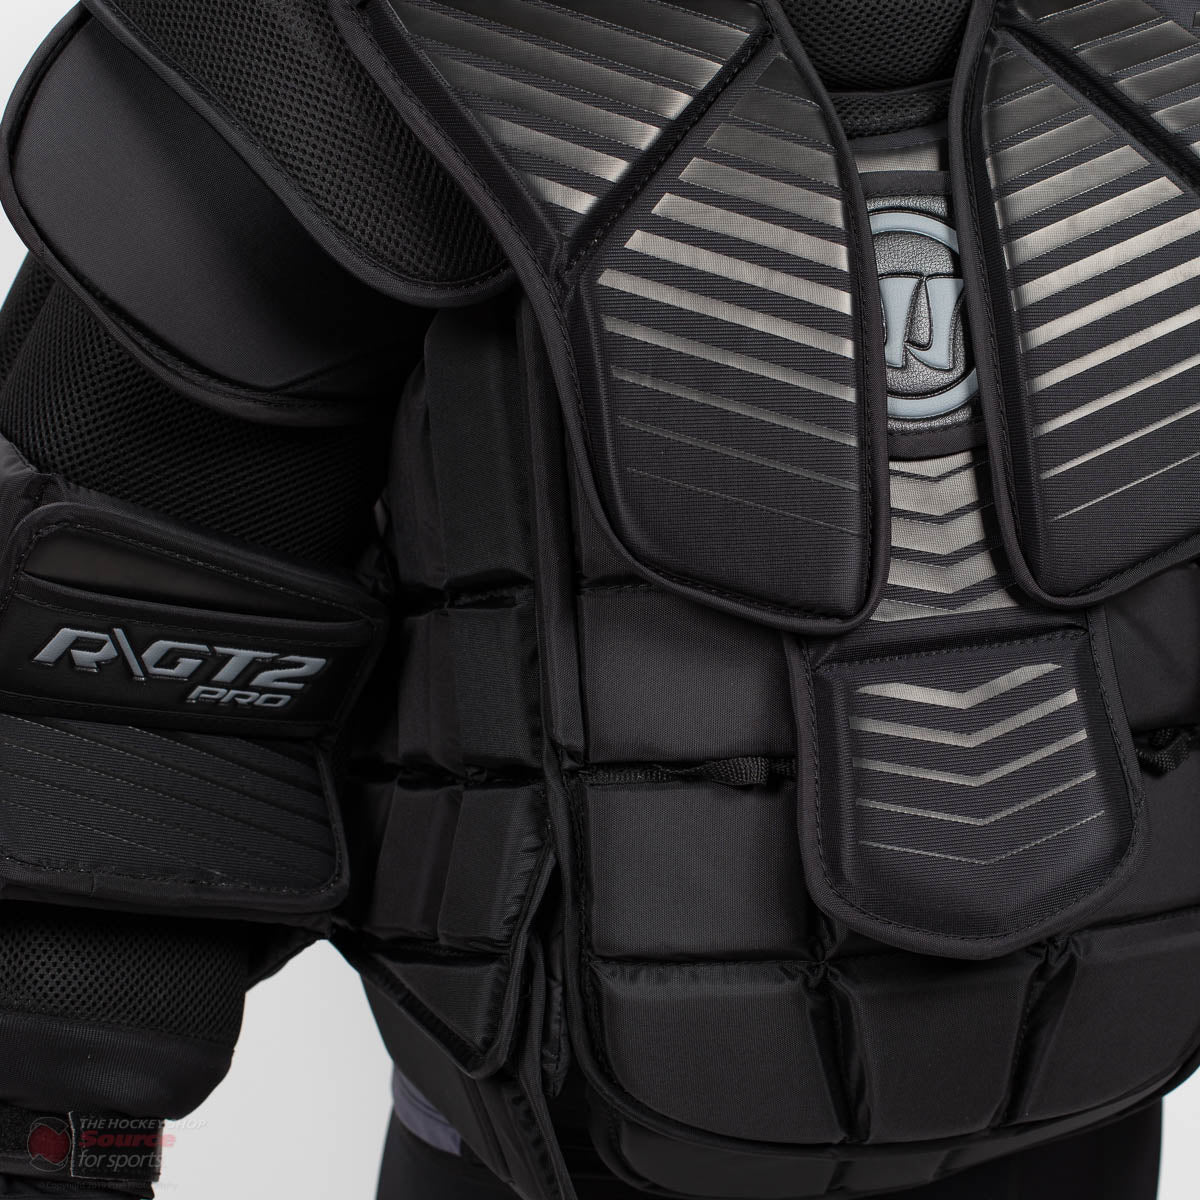 Warrior GT2 Pro Chest Protector